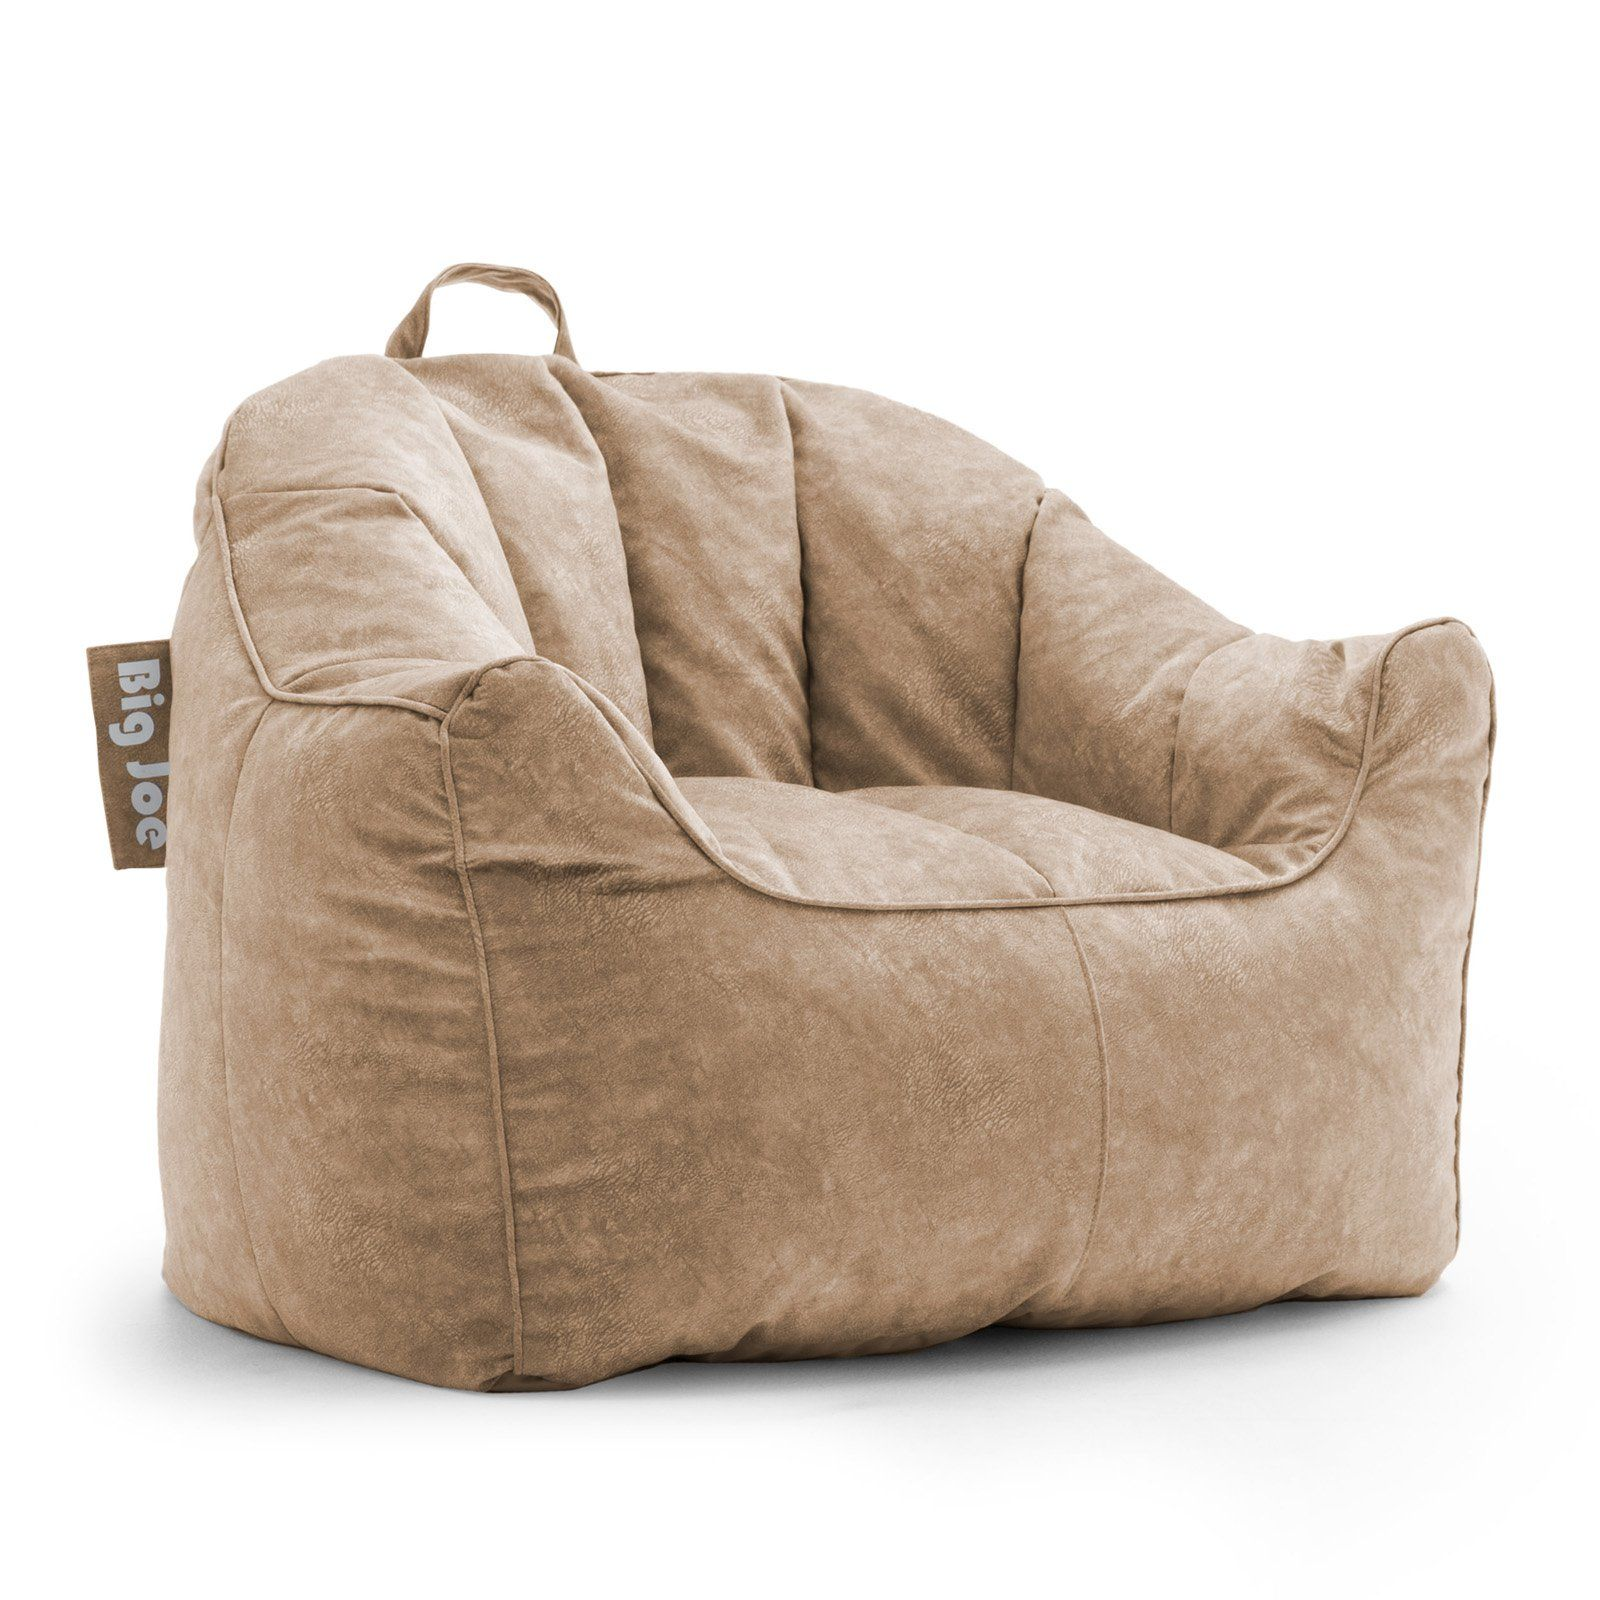 Awe Inspiring Big Joe Hug Bean Bag Chair Lunar Gray In 2019 Products Ocoug Best Dining Table And Chair Ideas Images Ocougorg